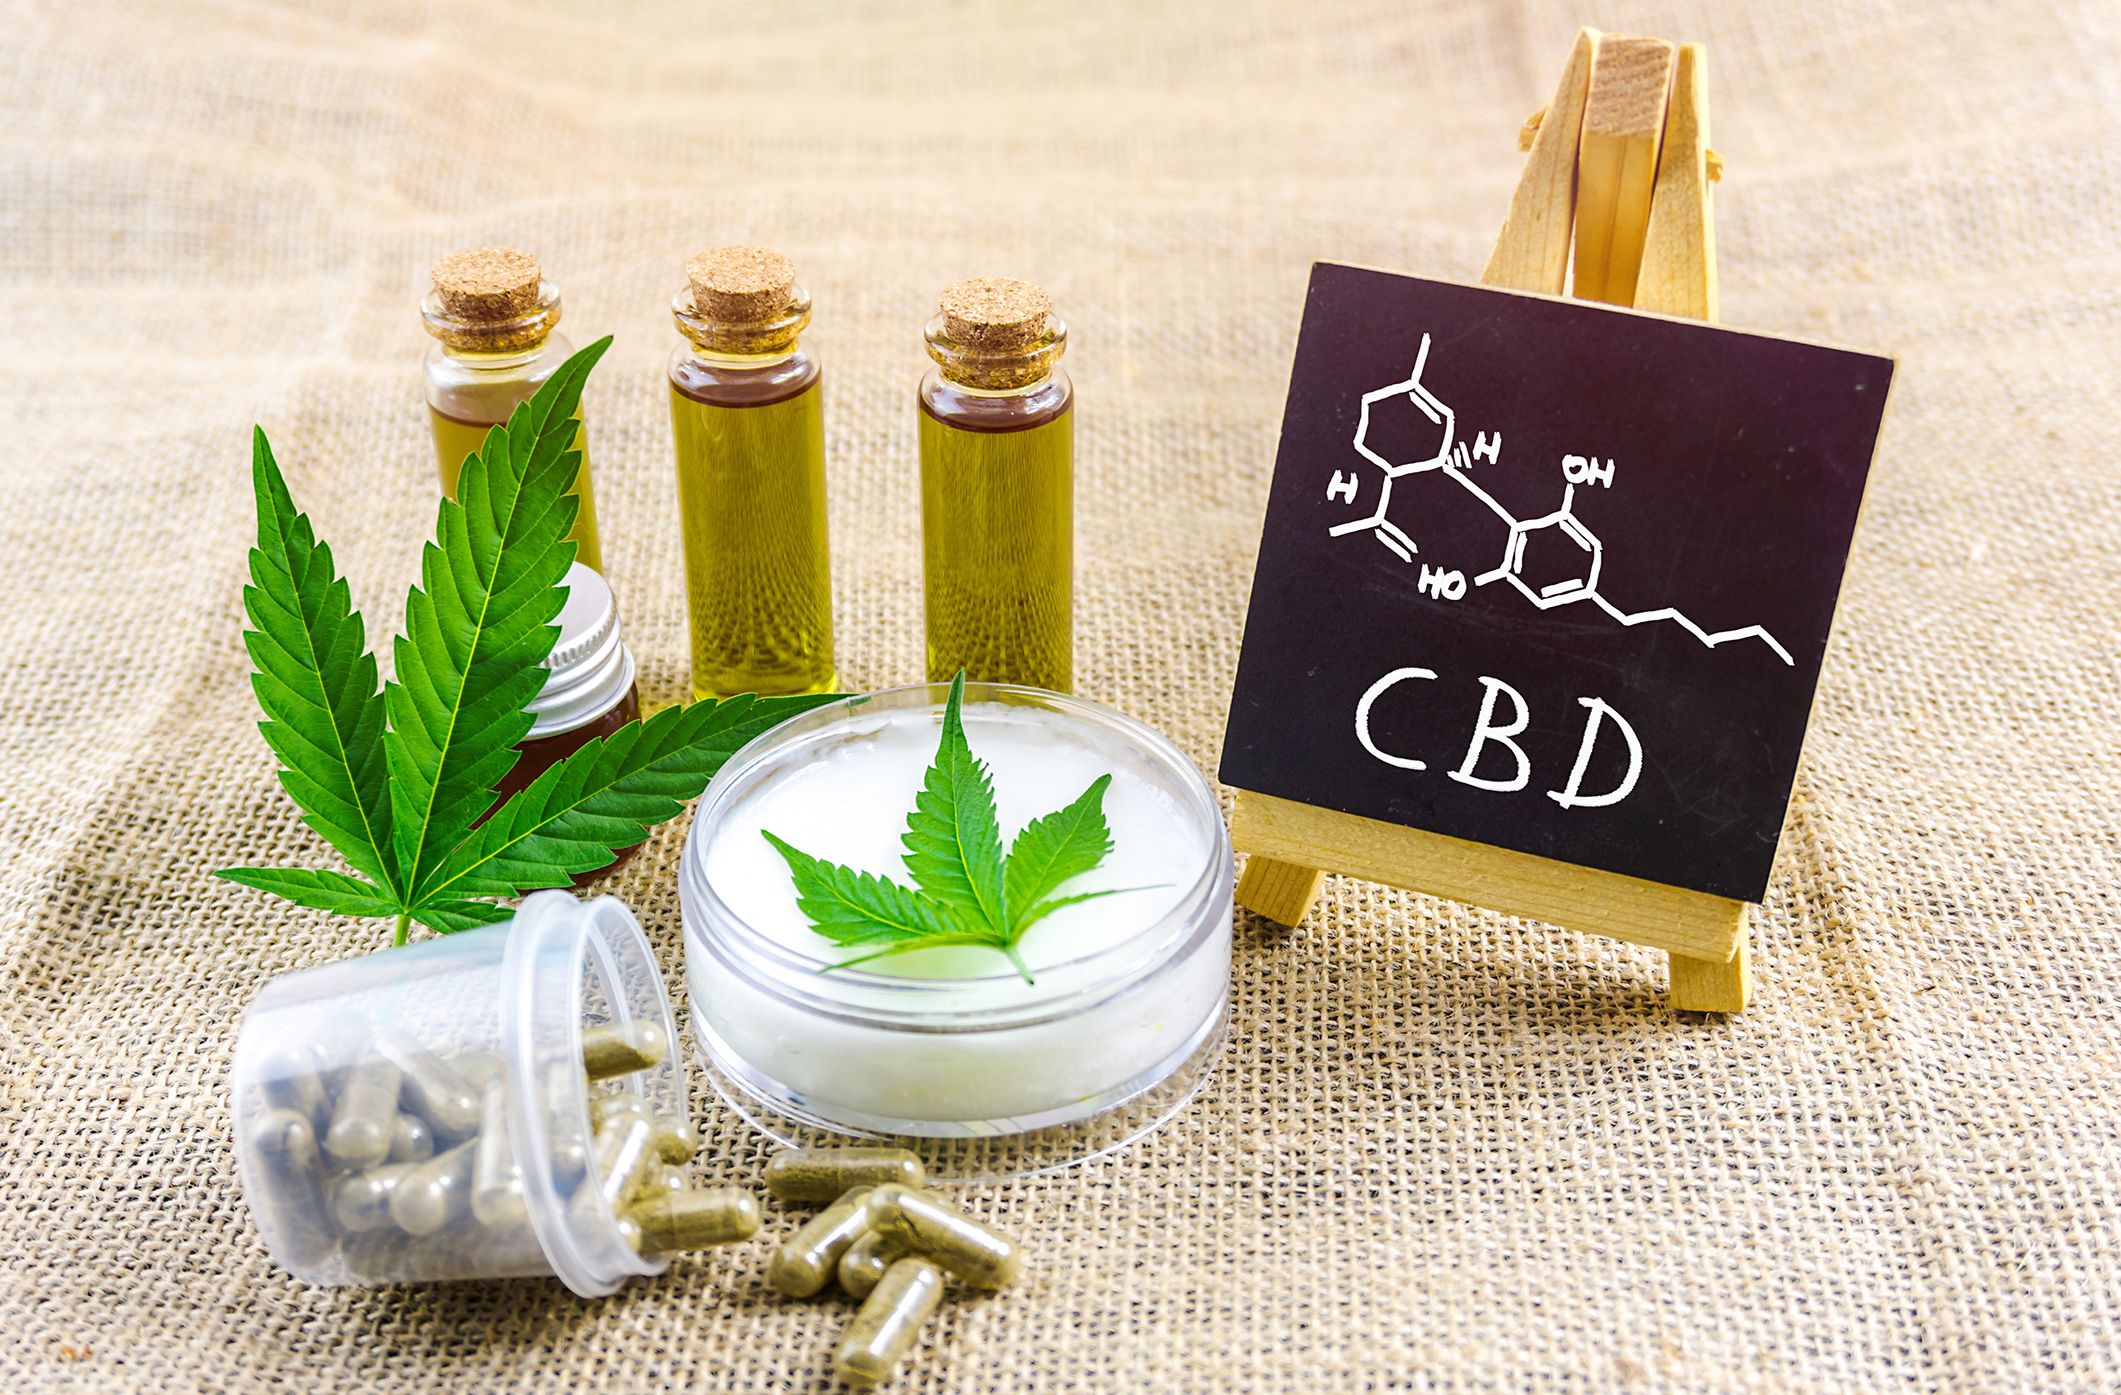 https://pccbd.com/wp-content/uploads/2020/05/cbd-blackboard-with-chemical-structure-gel-relax-cosmetic-cannabis-balm-moisturise-extract-pills_t20_WxBLL4.jpg